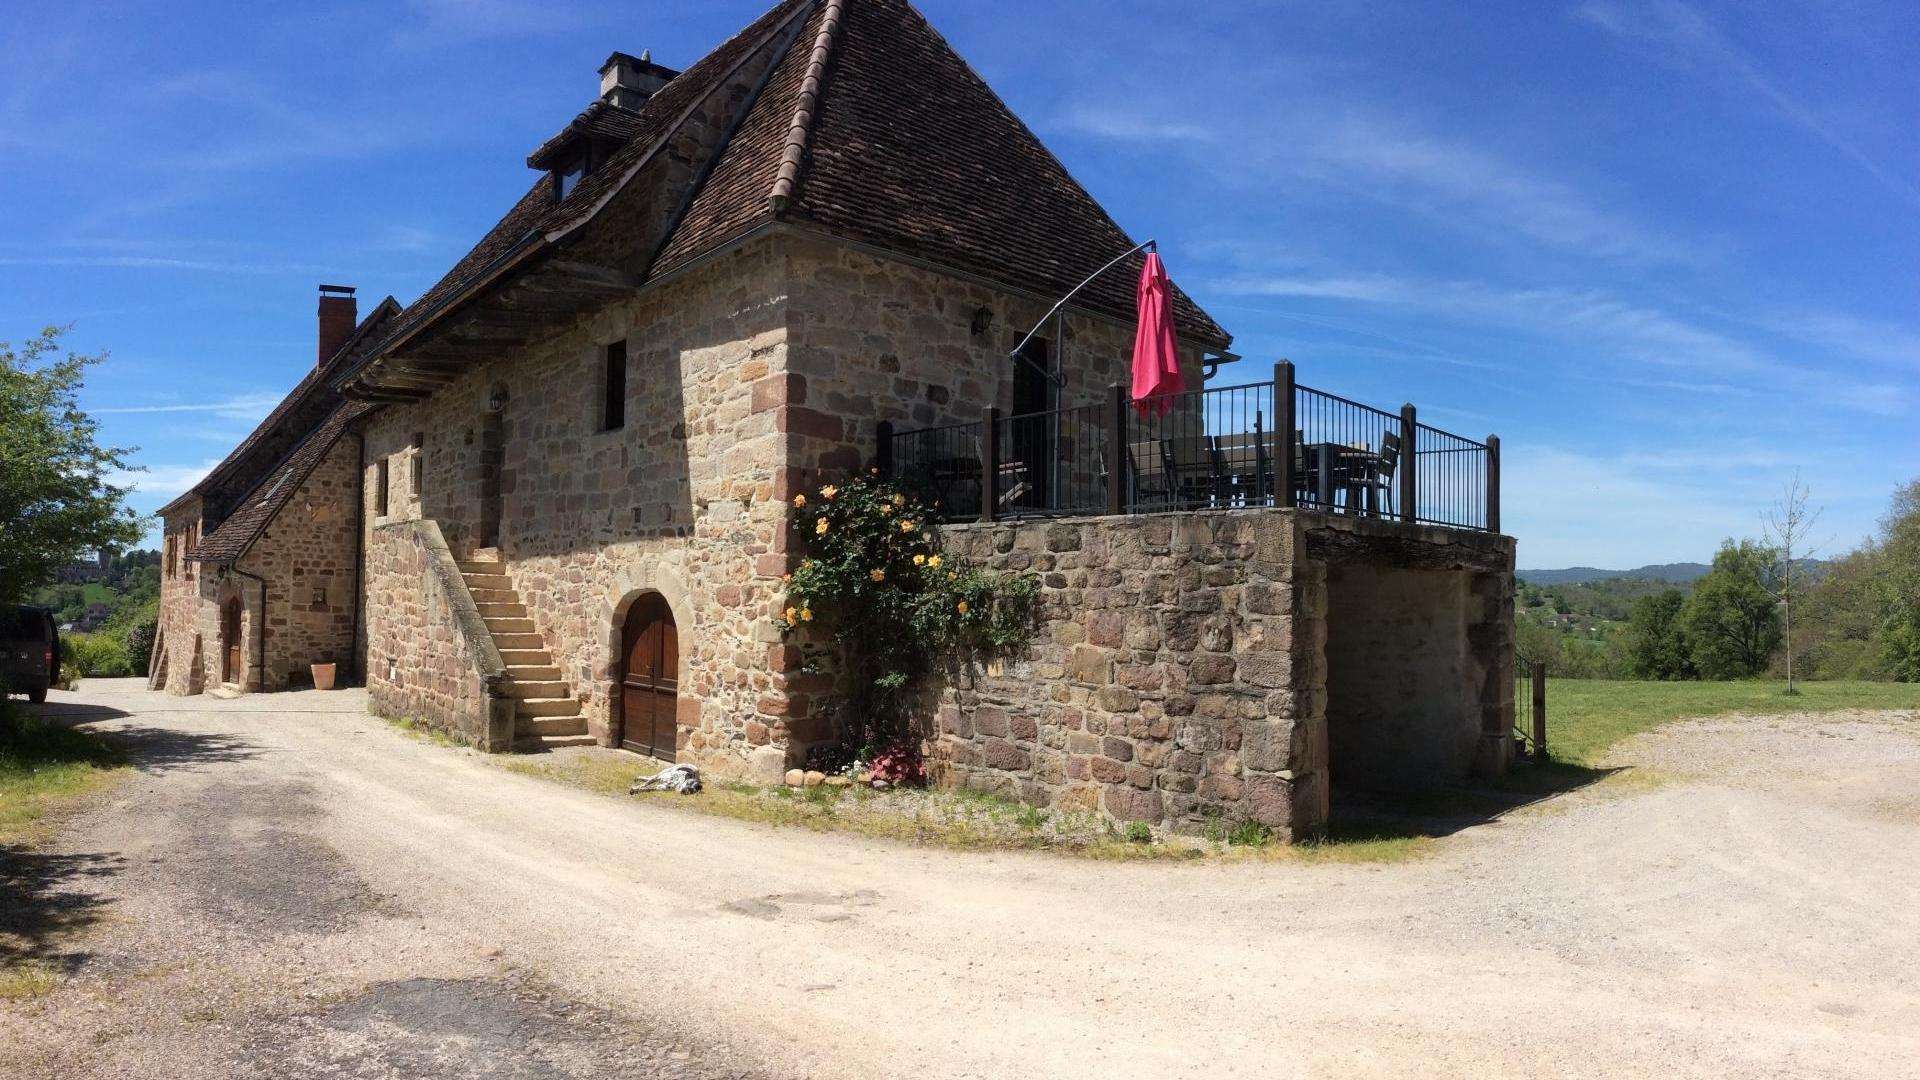 6 Bedroom Private house/shared grounds in Limousin, France